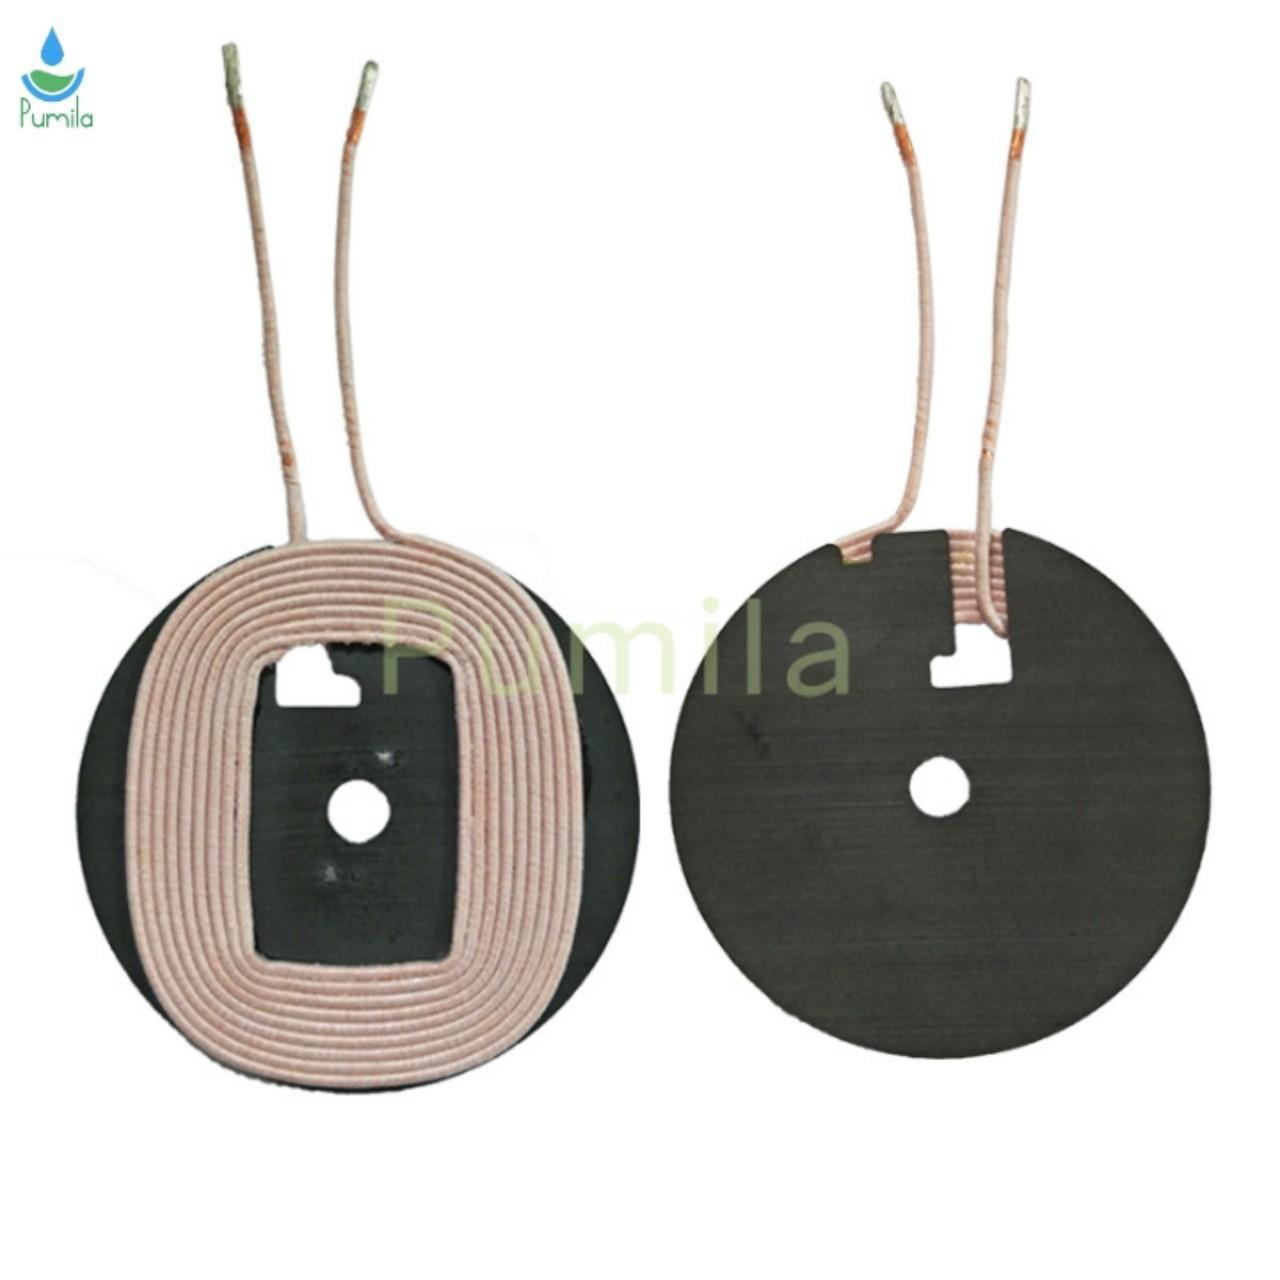 Copper Wire Winding coil QI wireless charger coil A11 with Ferrite for sale